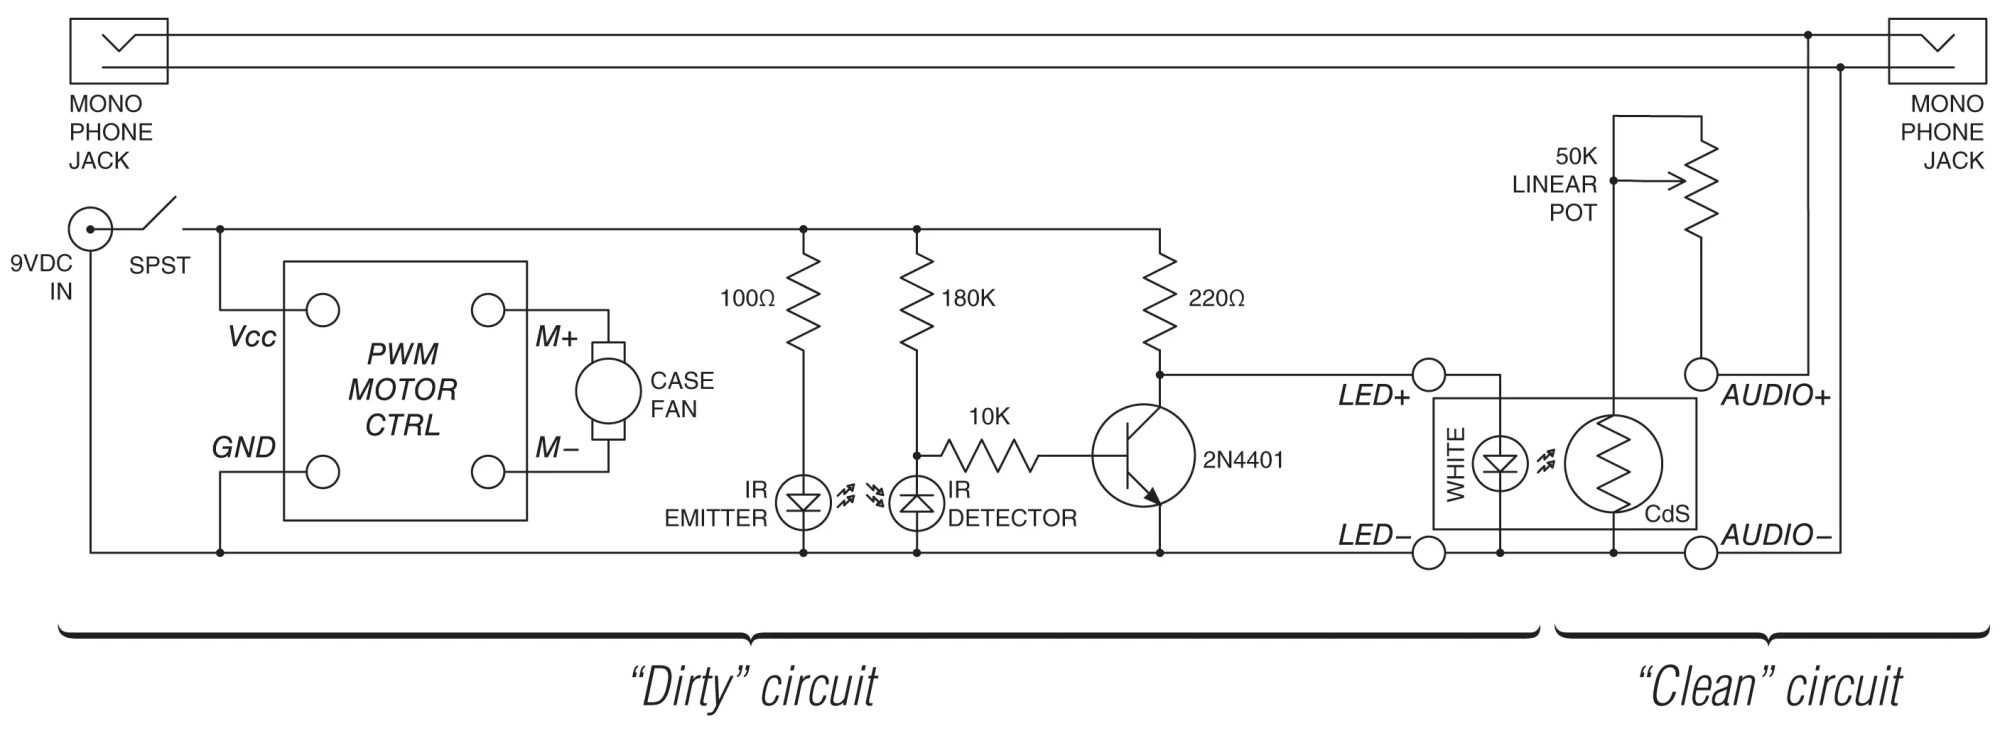 hight resolution of schematic diagram click above for larger image or here for more detailed pdf